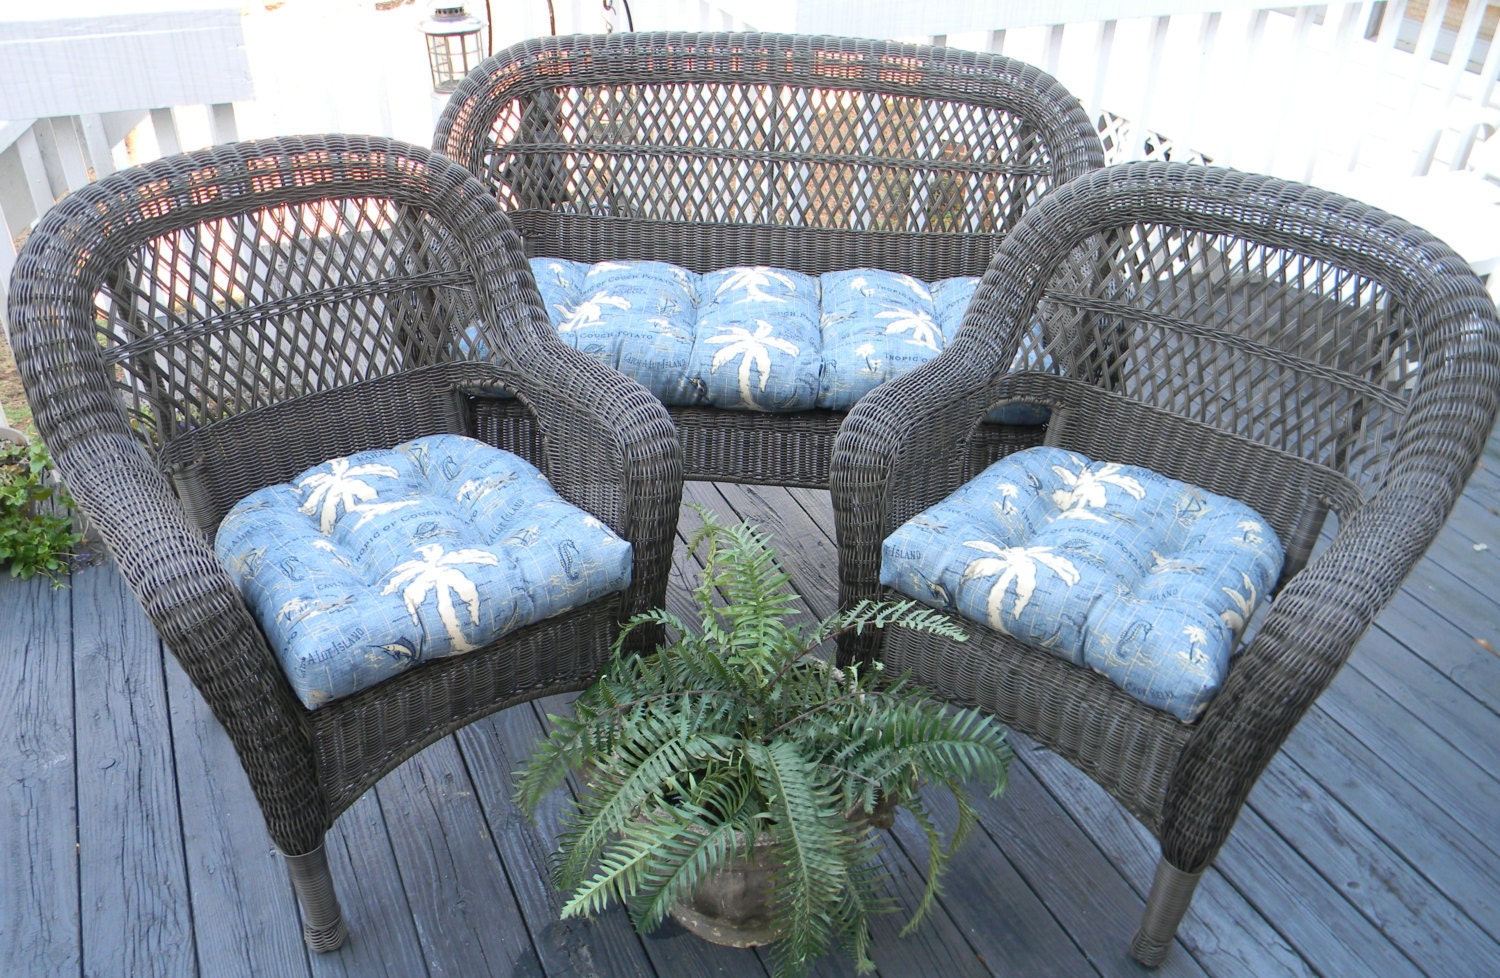 club pines lounge tortuga cushions monserratsangria cushion outdoor lexington sea replacement chair java wicker